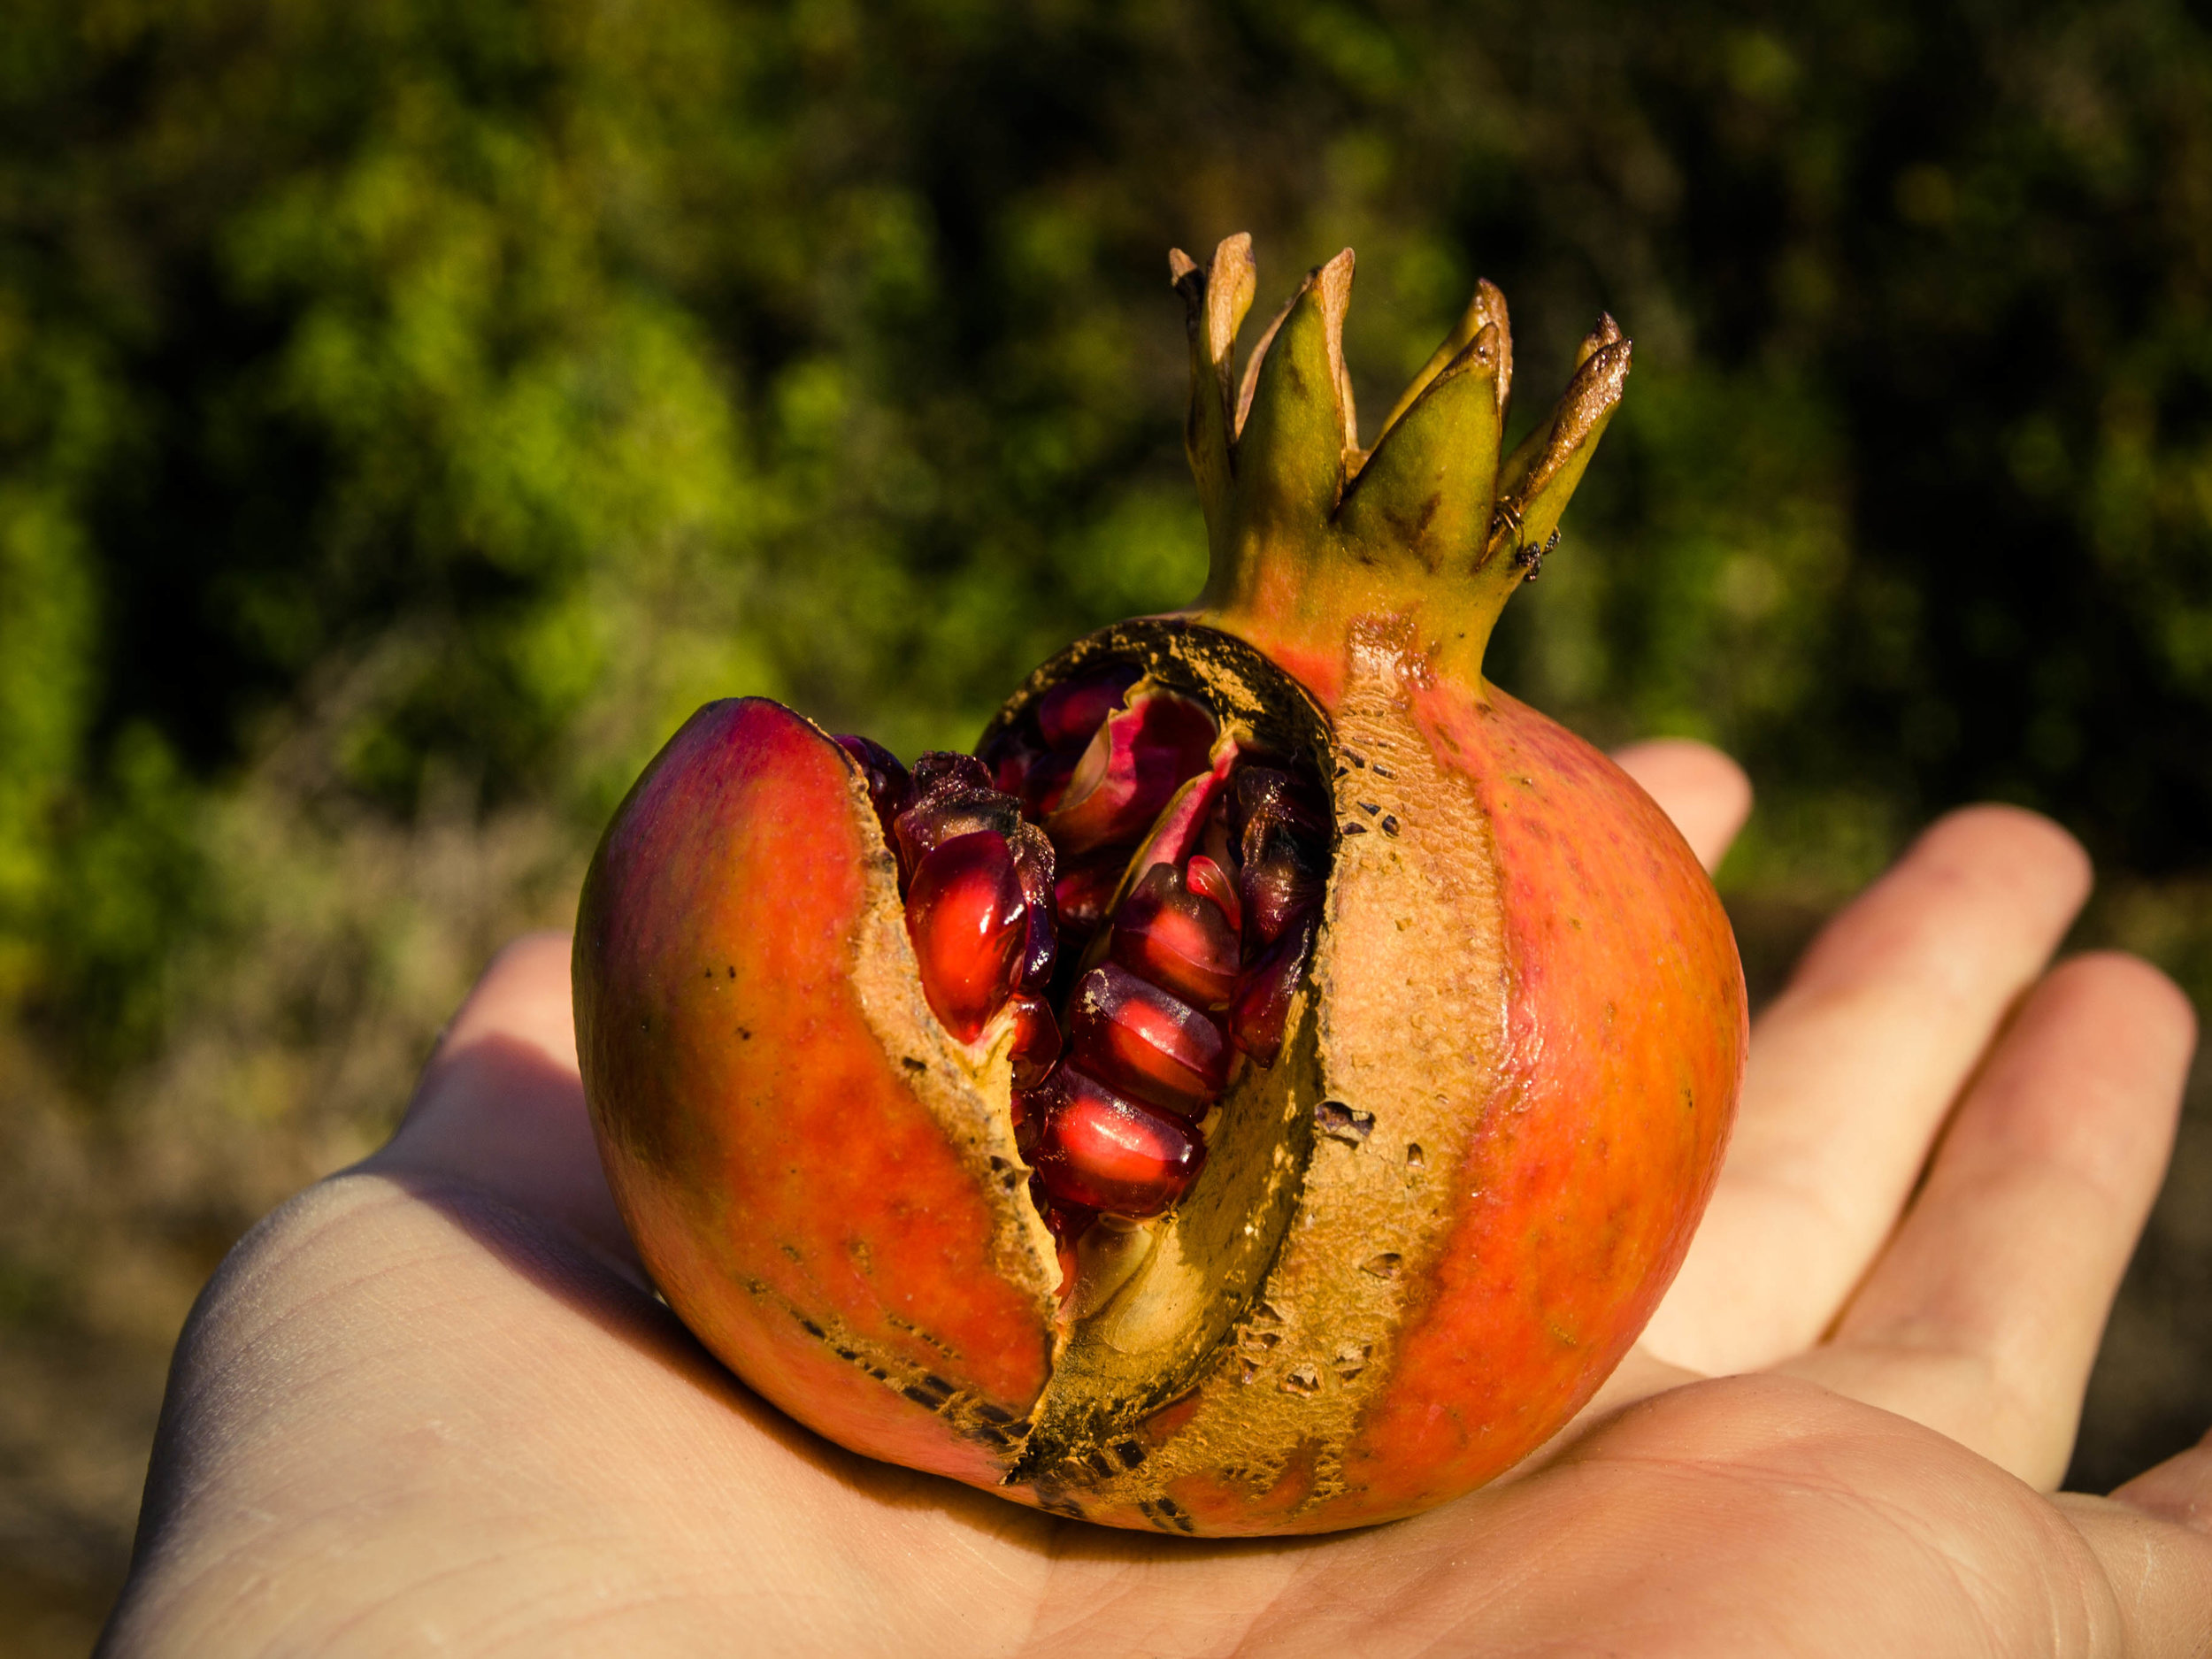 Nothing better than a ripe pomegranate straight from the tree (Picture by Katherine Poseidon)